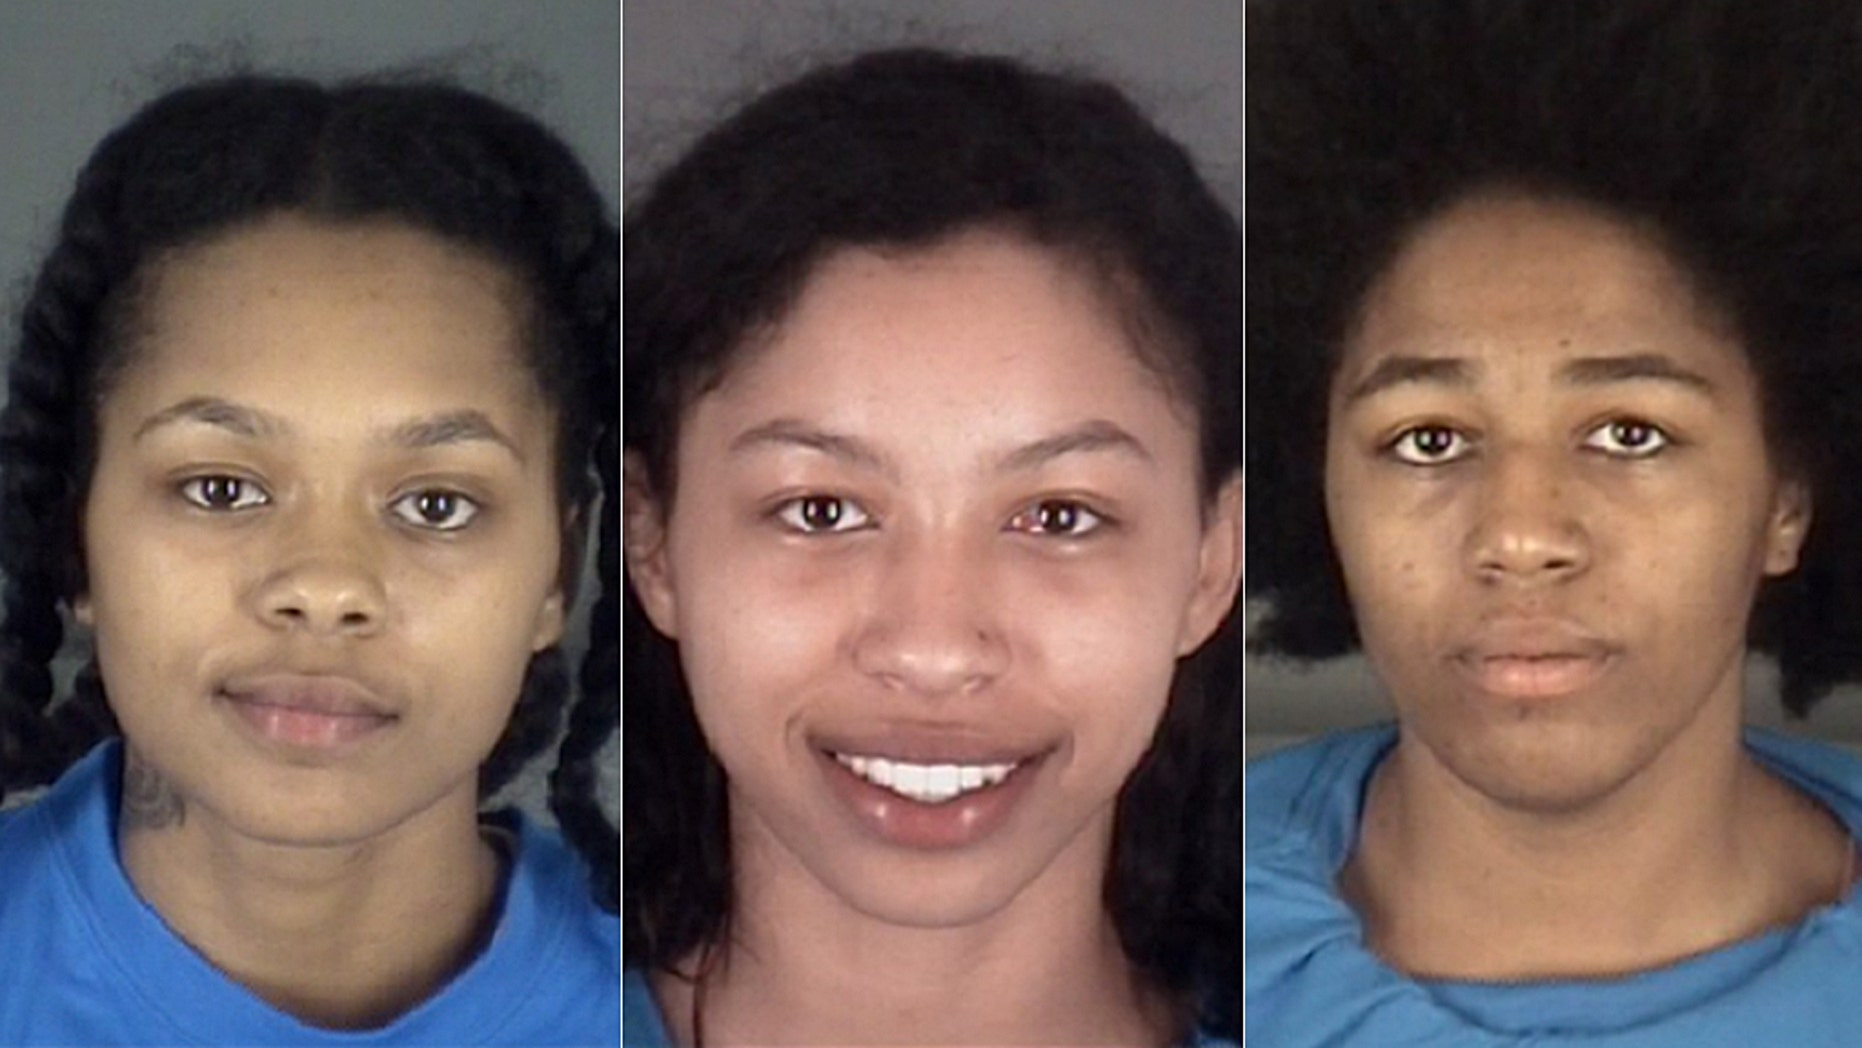 Oasis Mcleod, left, Jeniyah Mcleod, center, and Cecilia Young were arrested Wednesday after leading police on a wild chase in Florida.